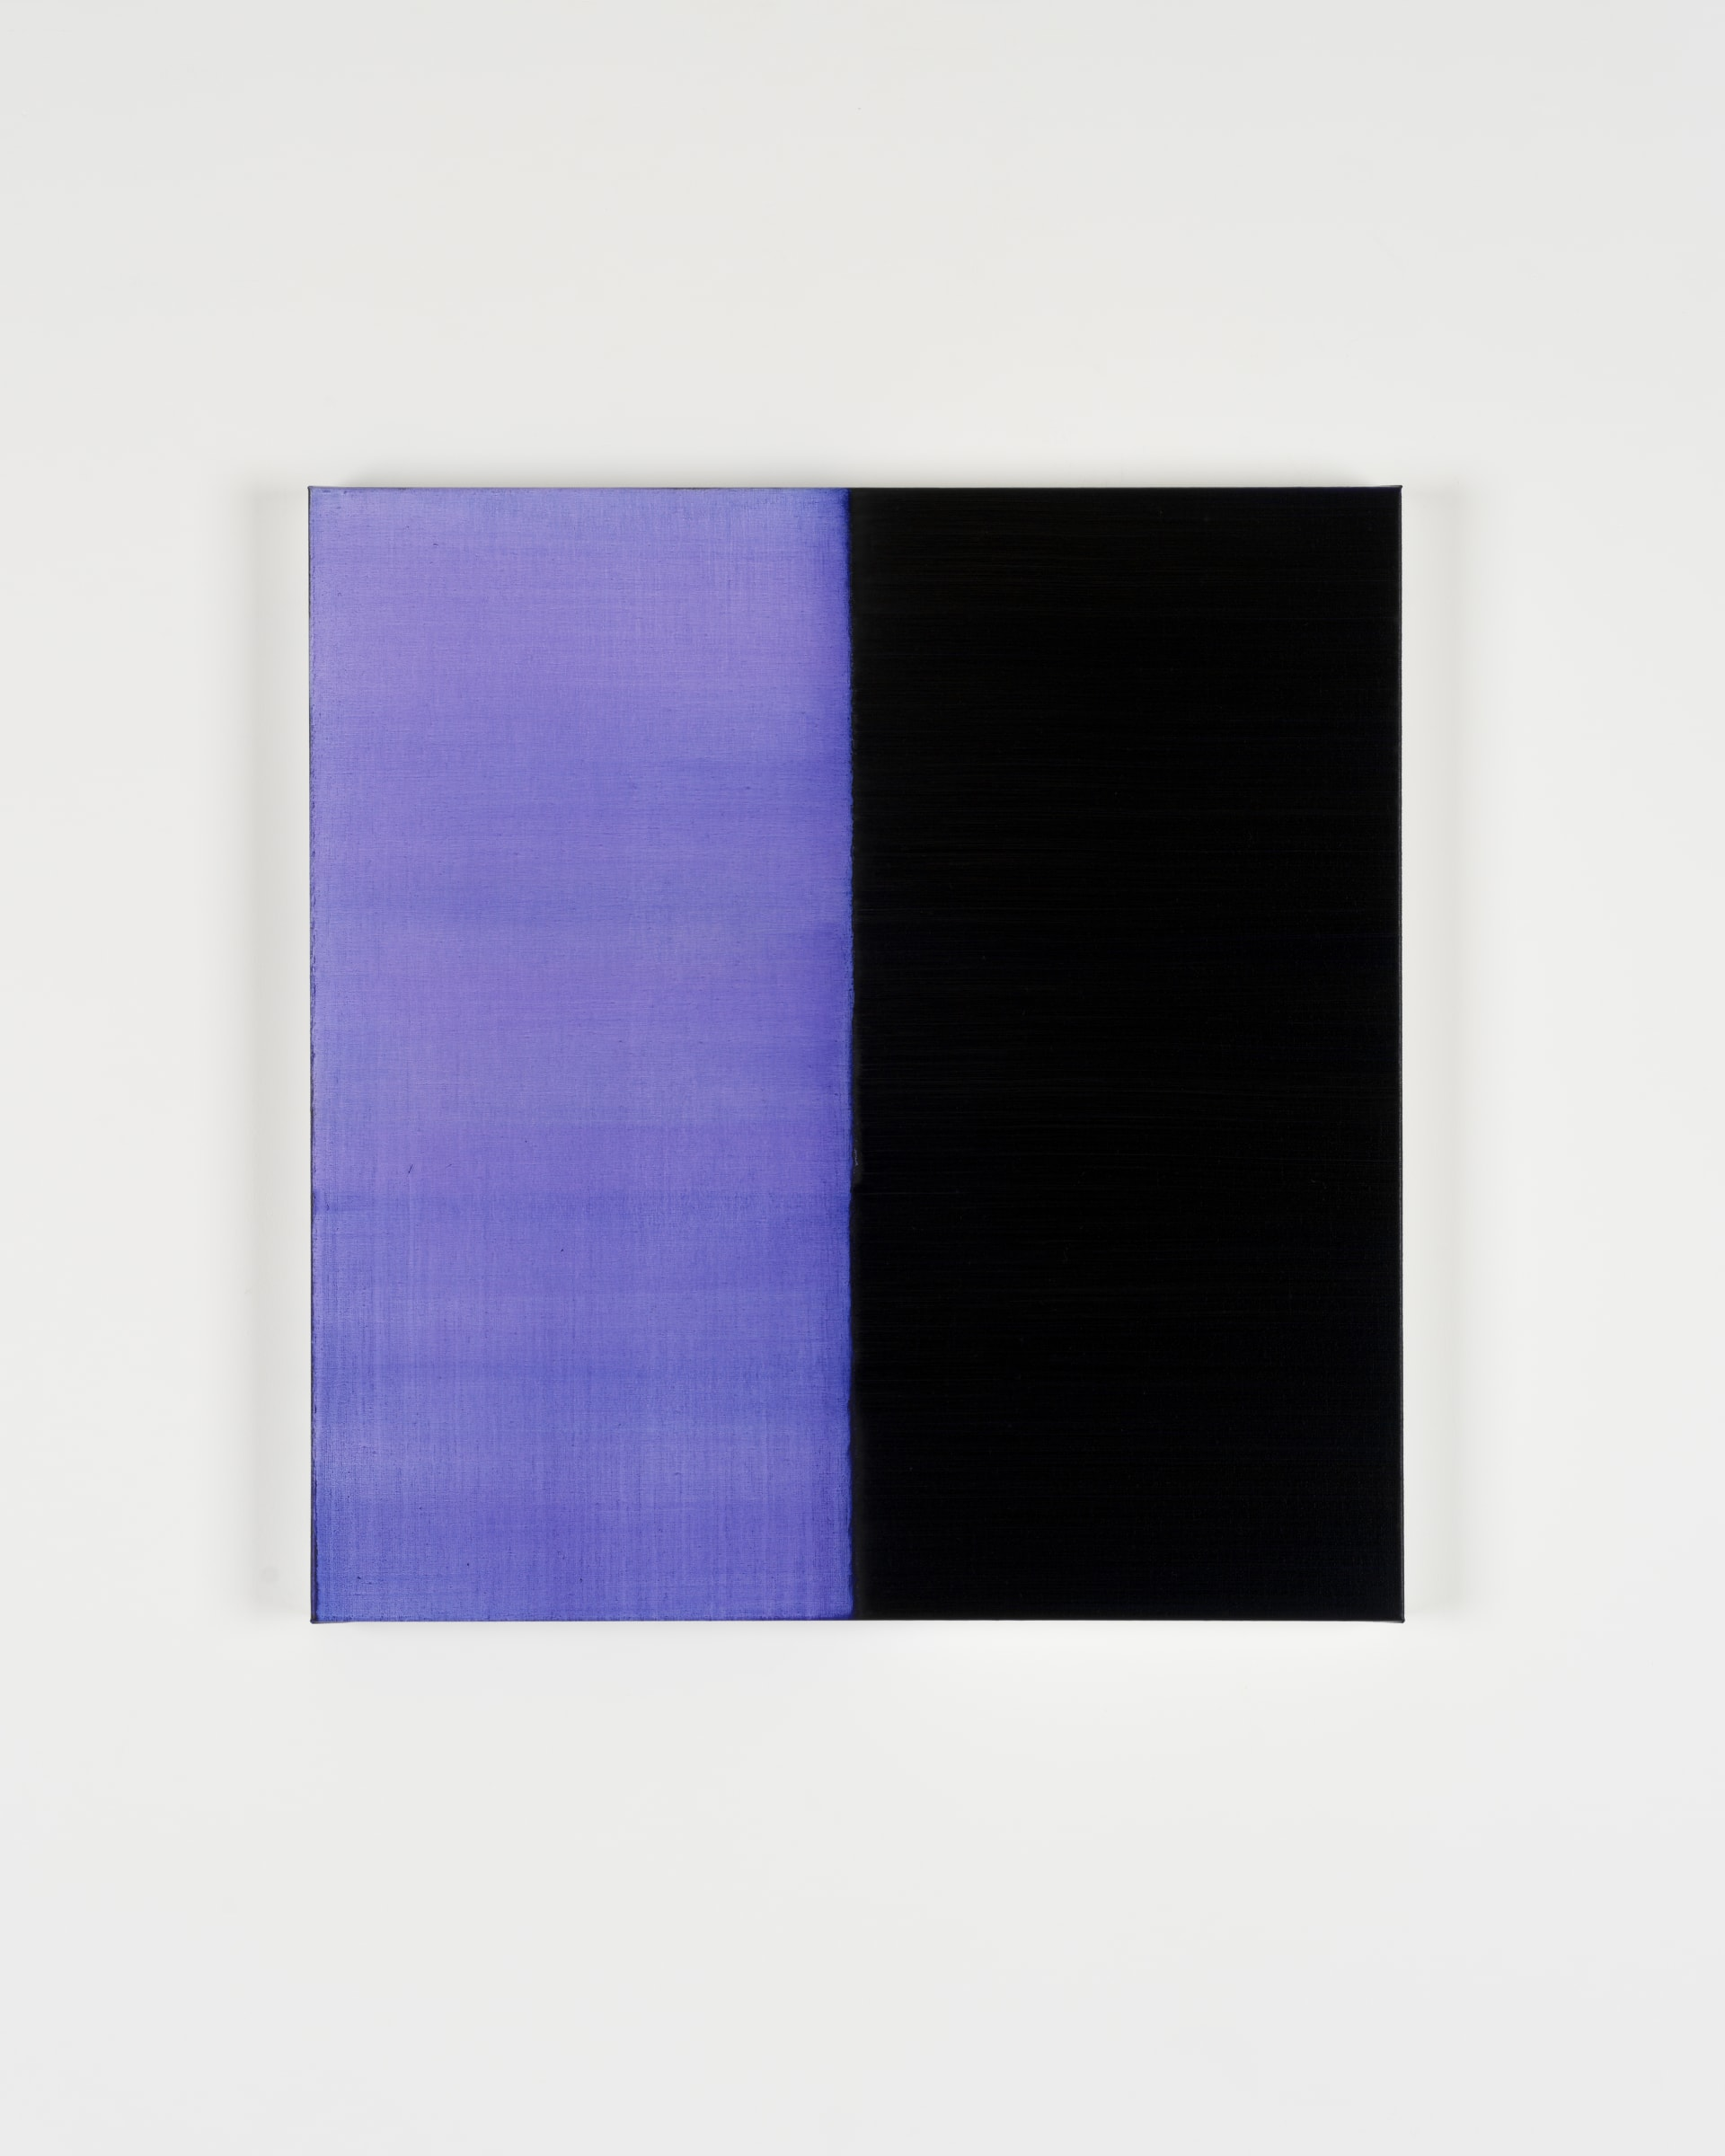 "<span class=""link fancybox-details-link""><a href=""/artists/33-callum-innes/works/16311/"">View Detail Page</a></span><div class=""artist""><strong>CALLUM INNES</strong></div> <div class=""title""><em>Untitled Lamp Black No 7</em>, 2019</div> <div class=""medium"">oil on linen</div> <div class=""dimensions"">60 x 58 cm<br /> 23 5/8 x 22 7/8 in</div><div class=""copyright_line"">Copyright The Artist</div>"